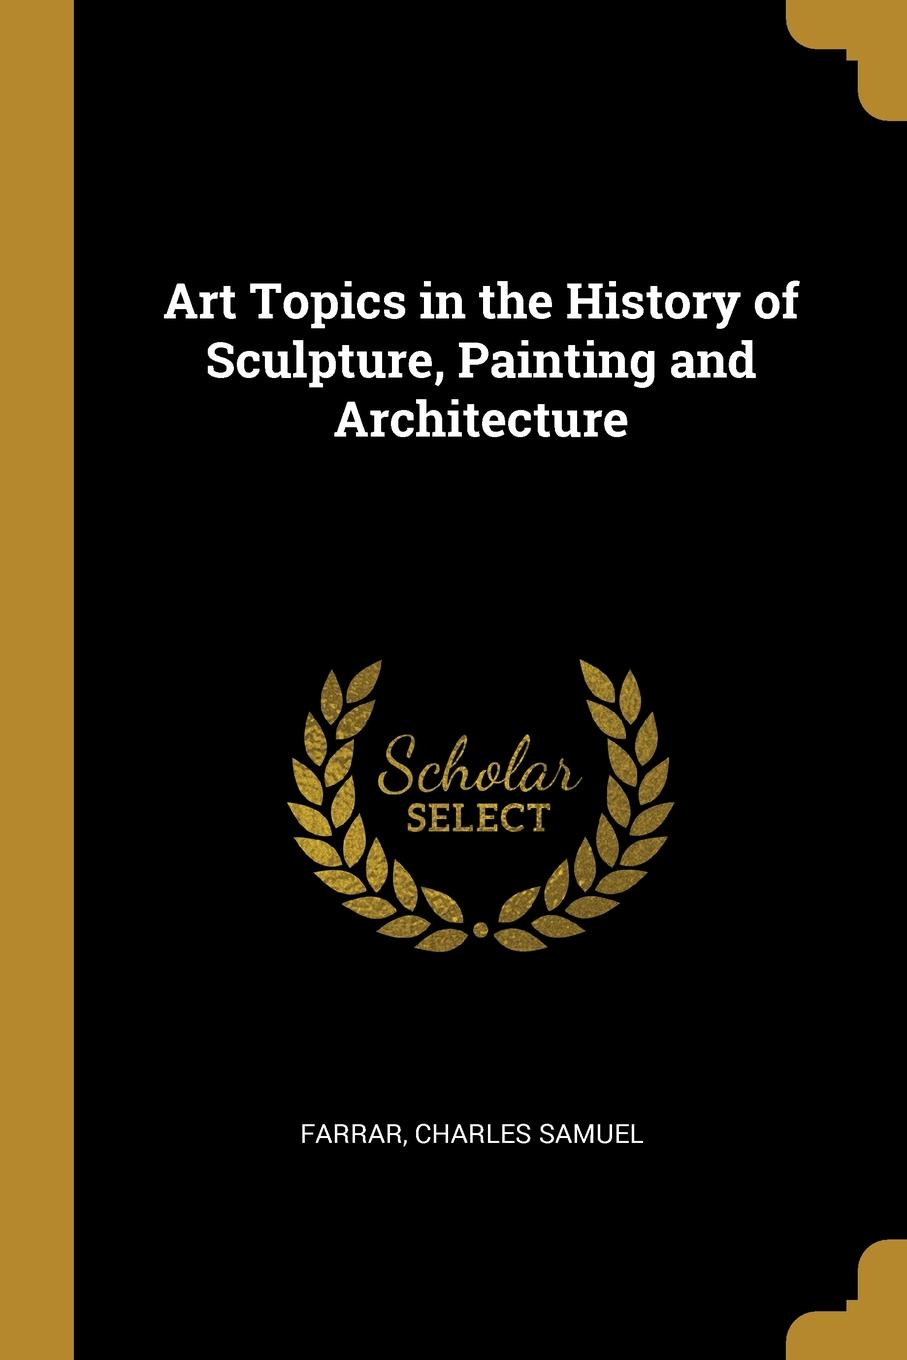 Farrar Charles Samuel. Art Topics in the History of Sculpture, Painting and Architecture